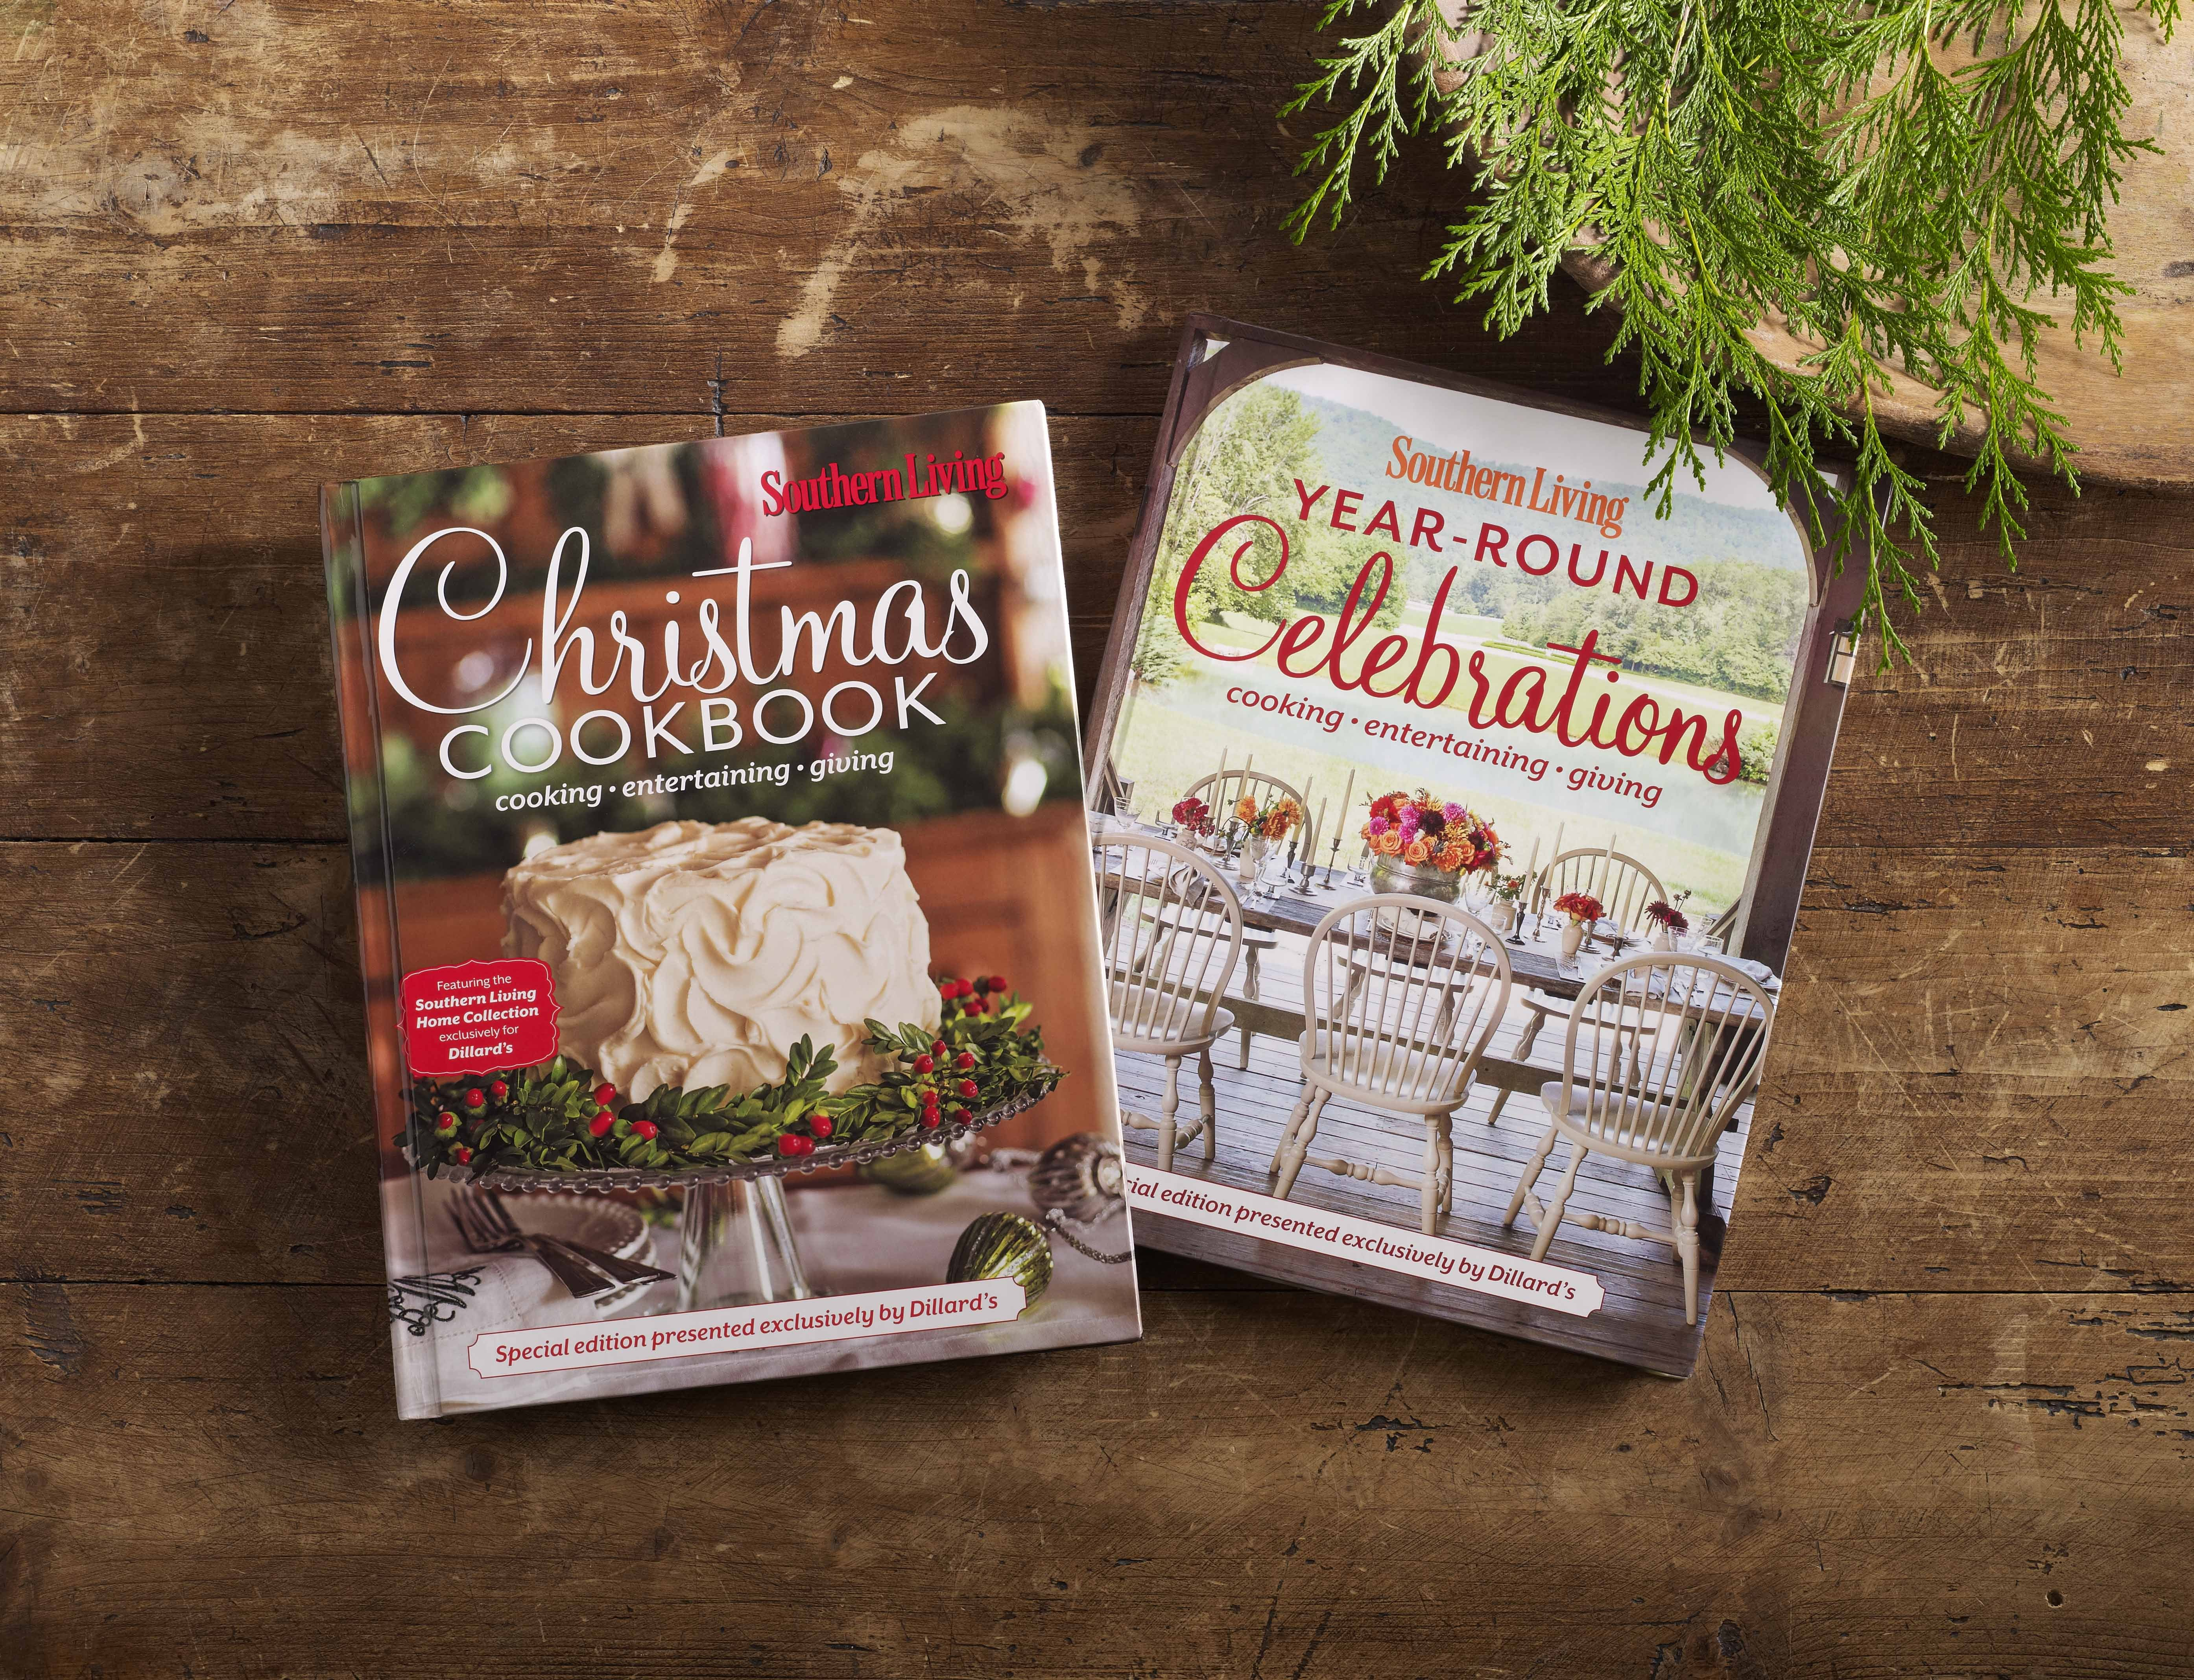 dillards offers exclusive southern living christmas cookbook to benefit ronald mcdonald house charities business wire